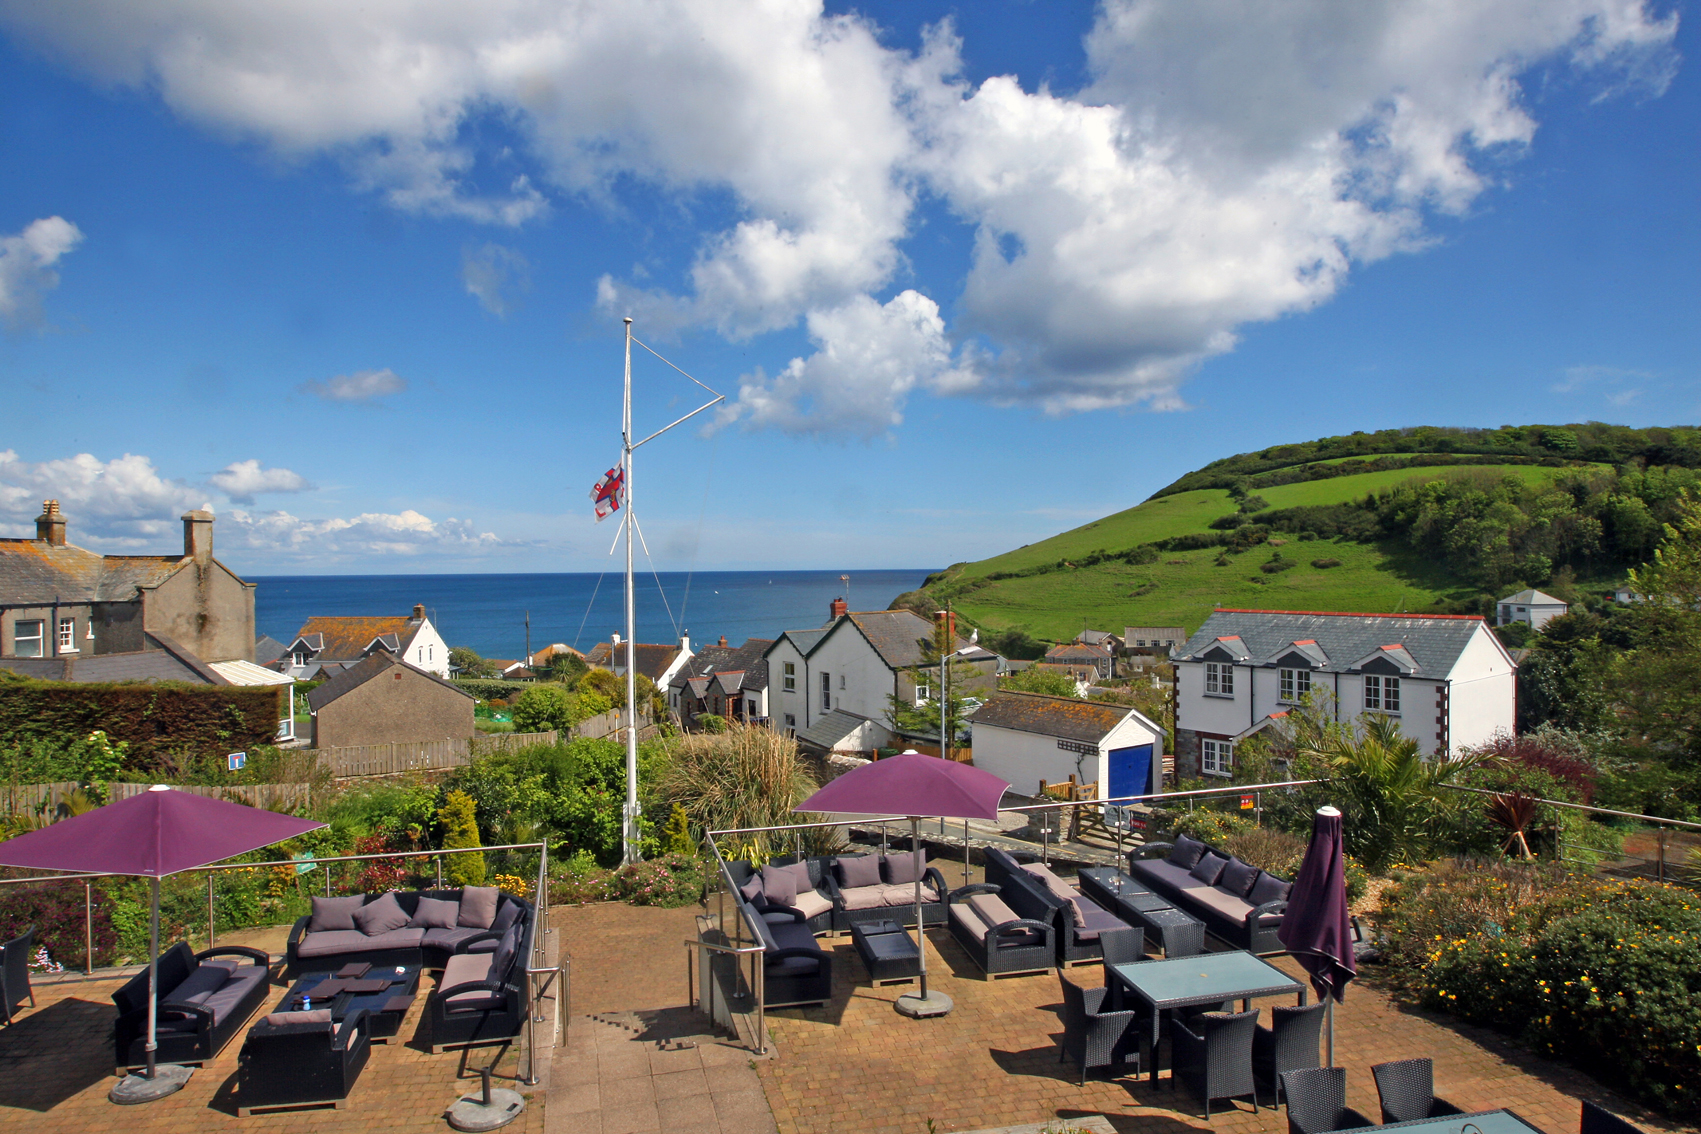 LlawnrocRm8f 16/06/2016 Room 8, a generous suite room with a balcony boasting sea views.